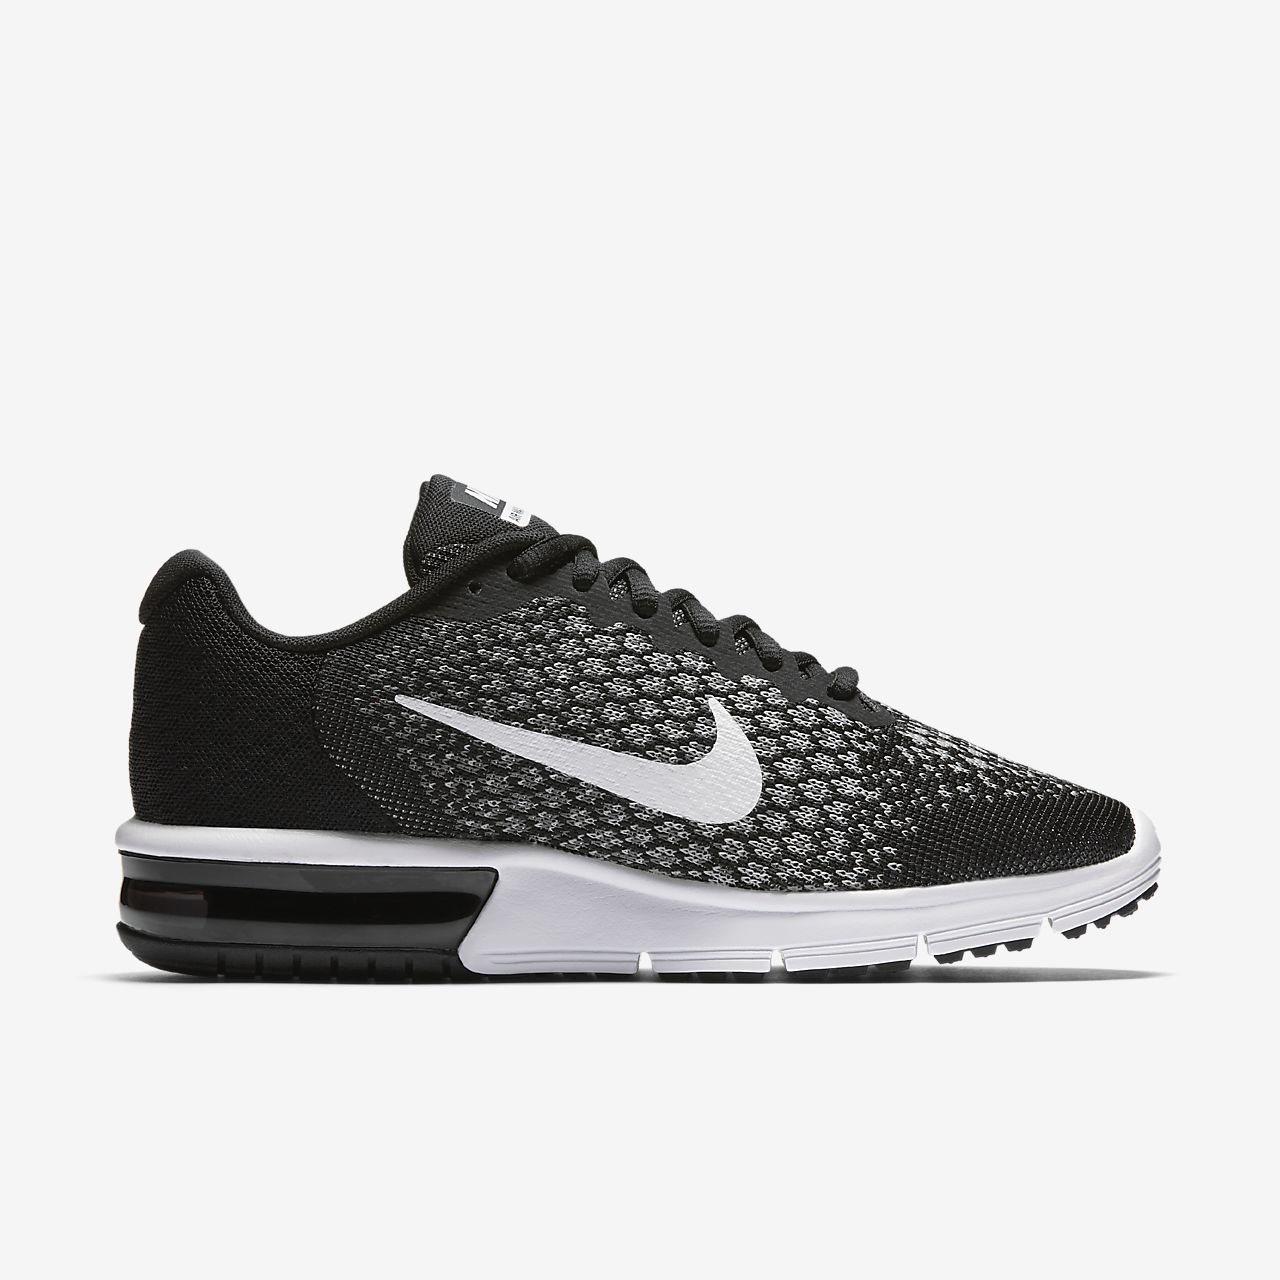 0af8c6f8271b4 Nike Air Max 2 : Buy Nike Sneakers & Shoes | Air force 1, Air max ...